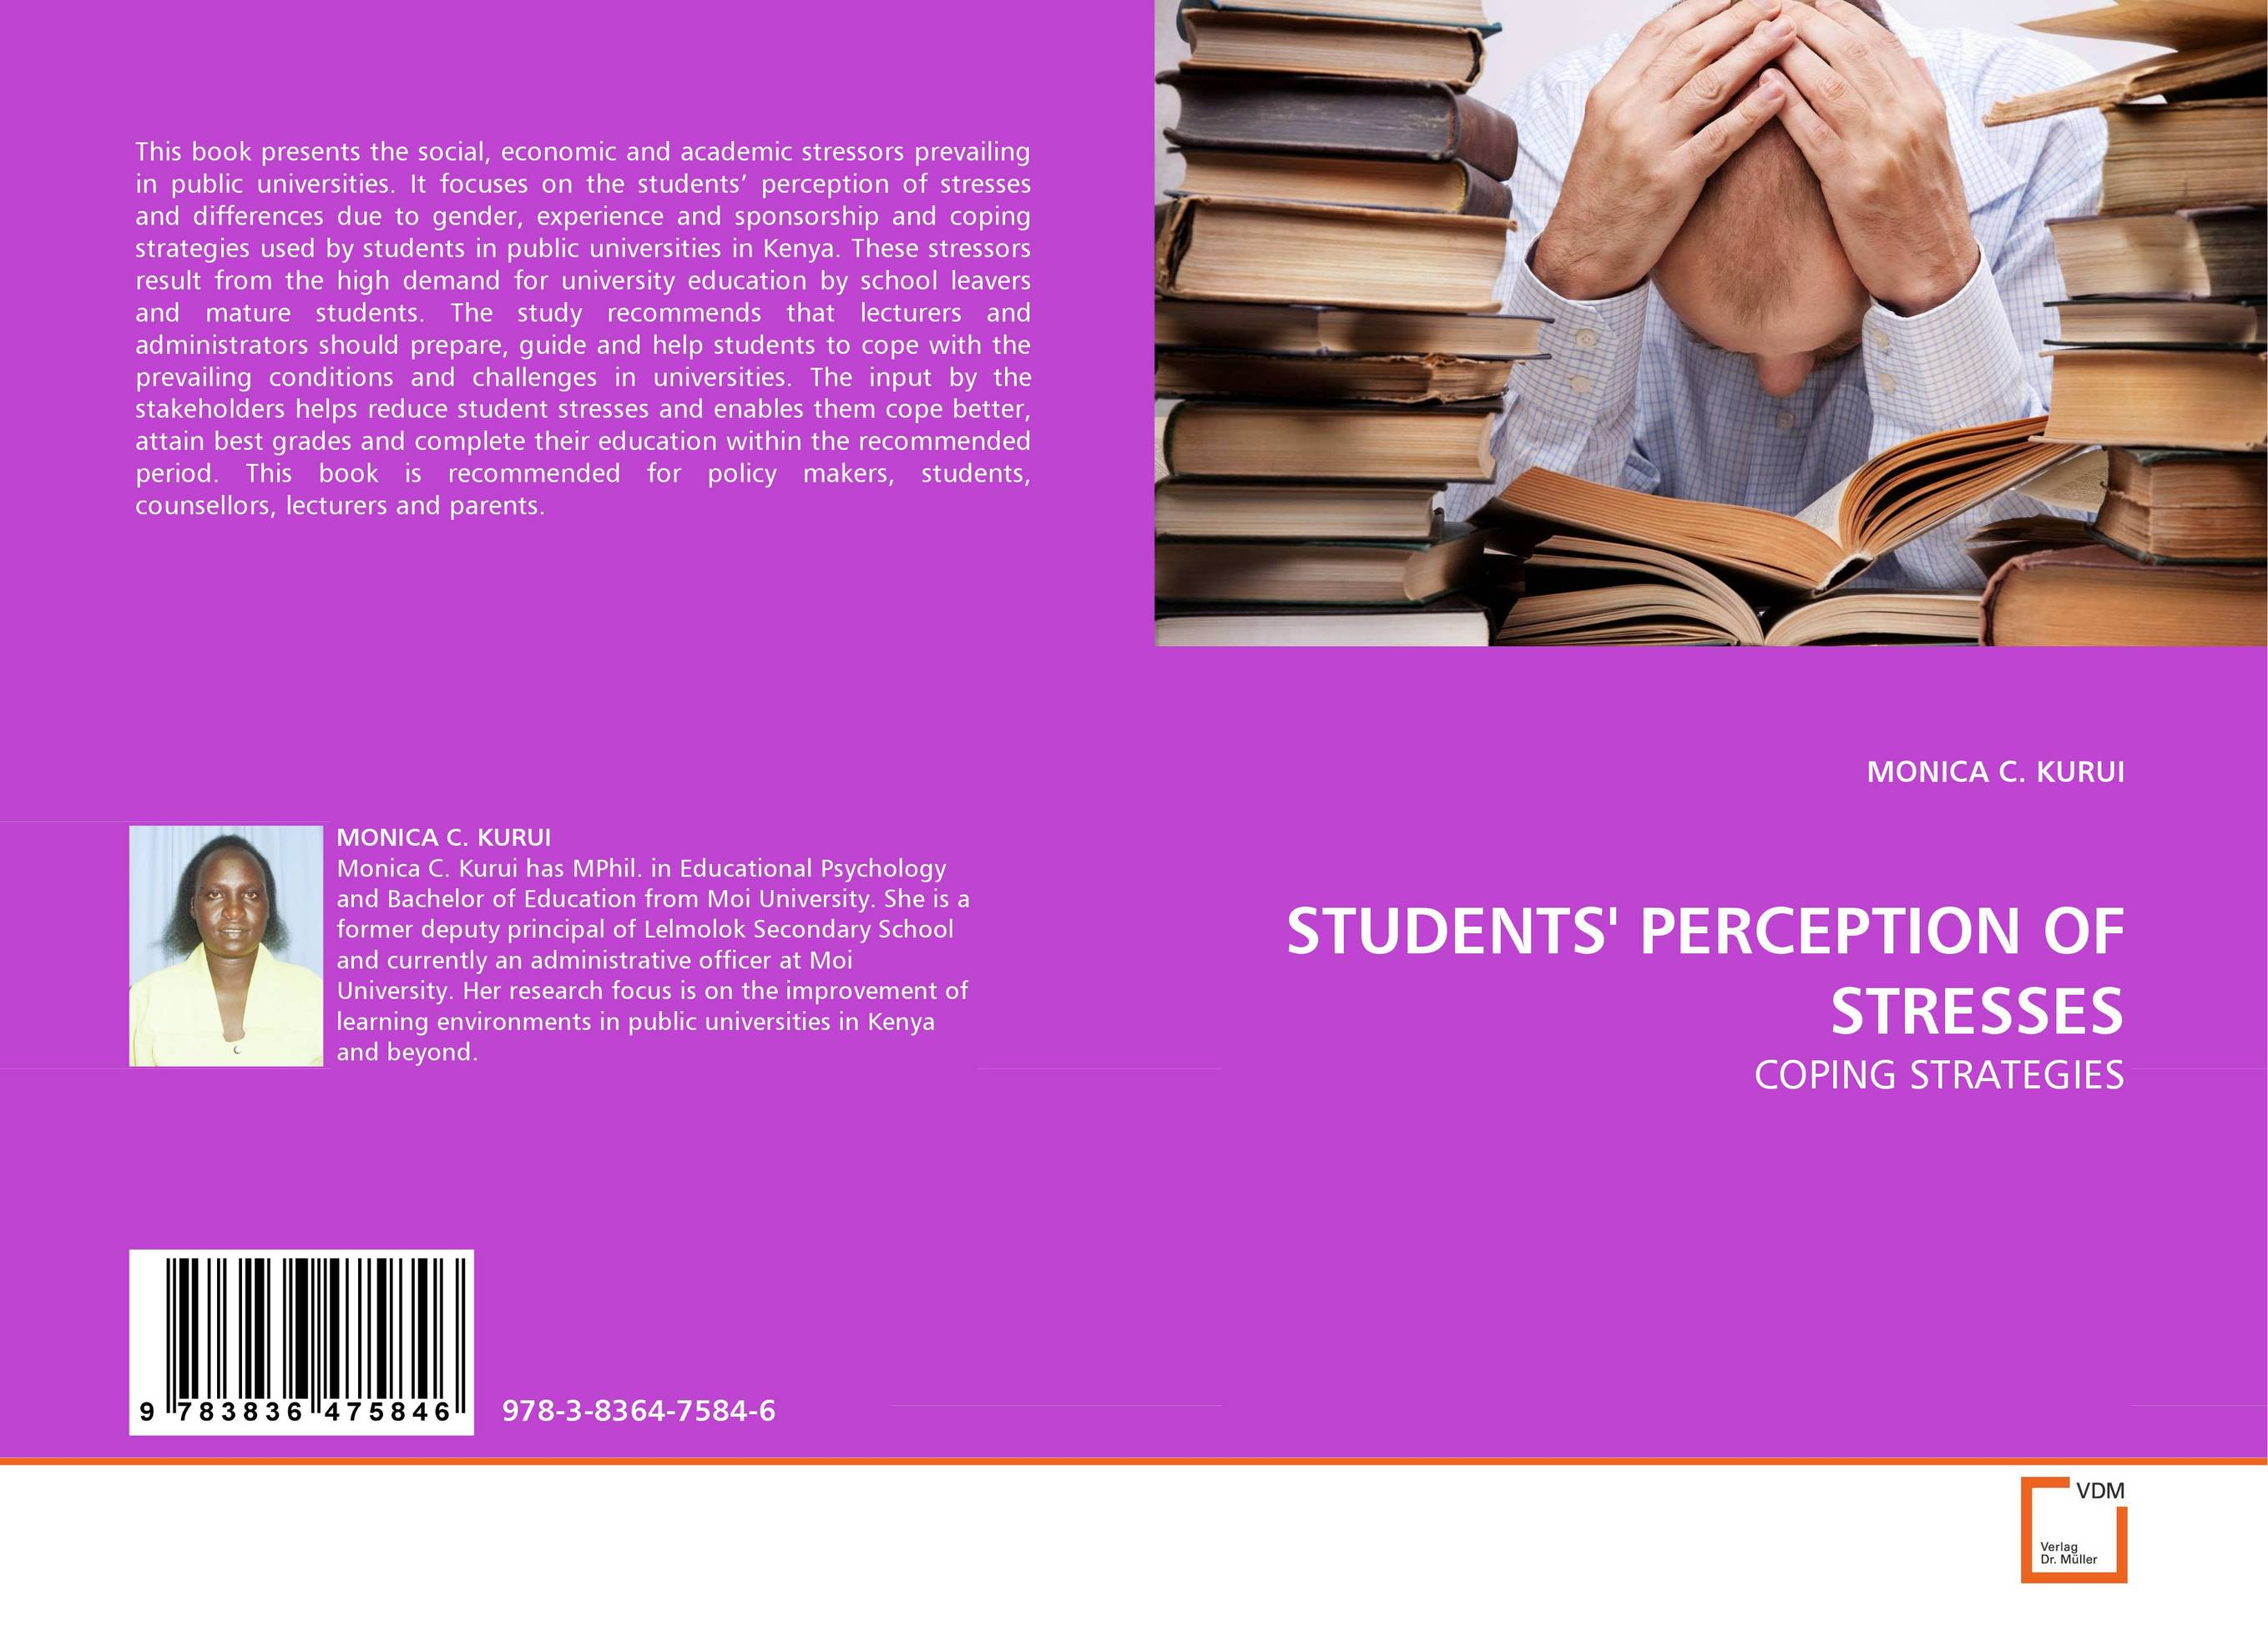 STUDENTS'' PERCEPTION OF STRESSES